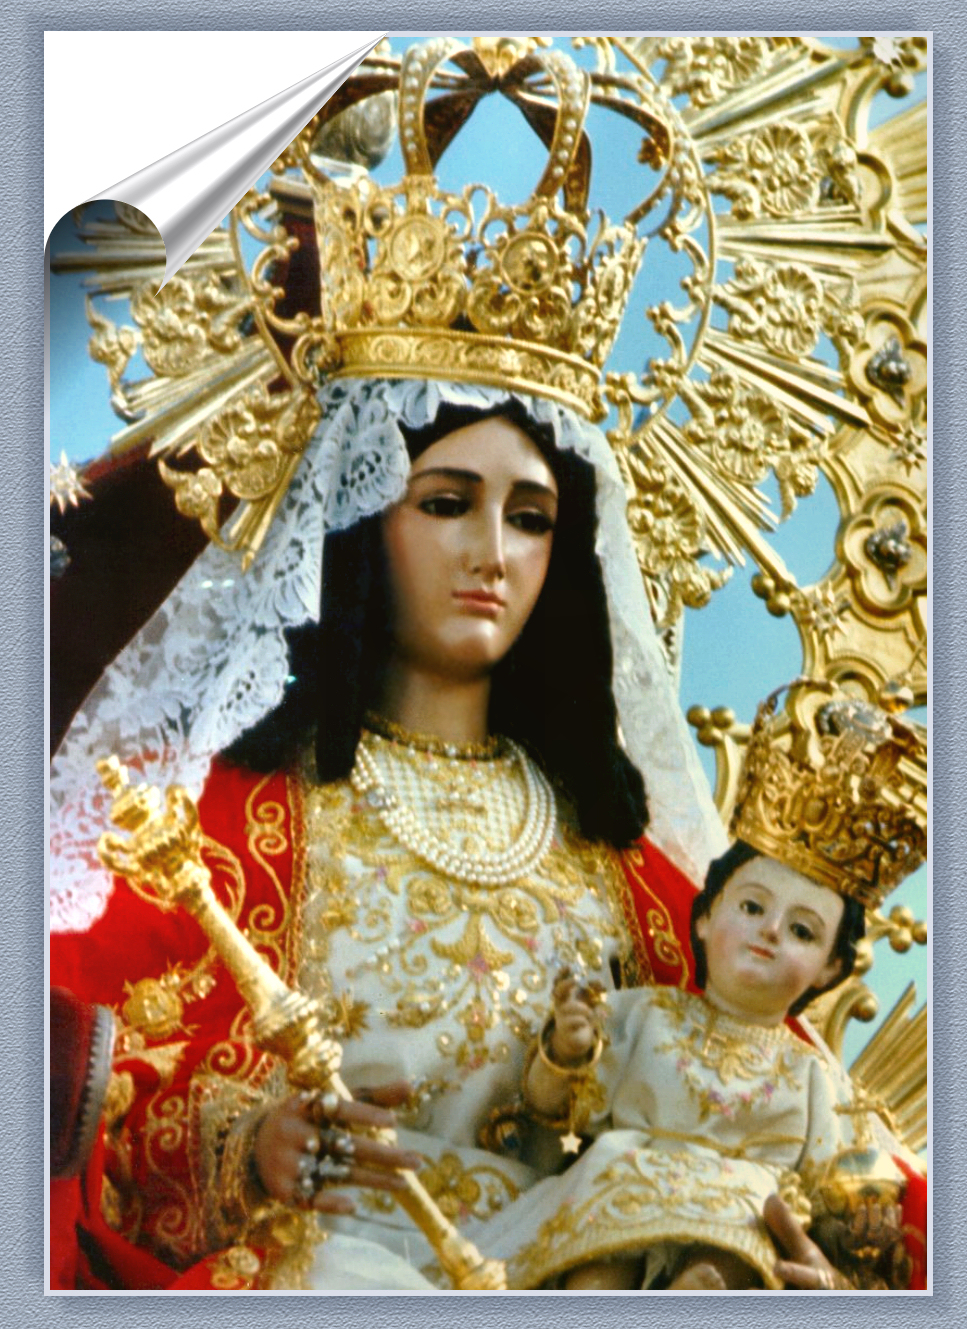 OUR LADY OF SUCCOR: SPAIN